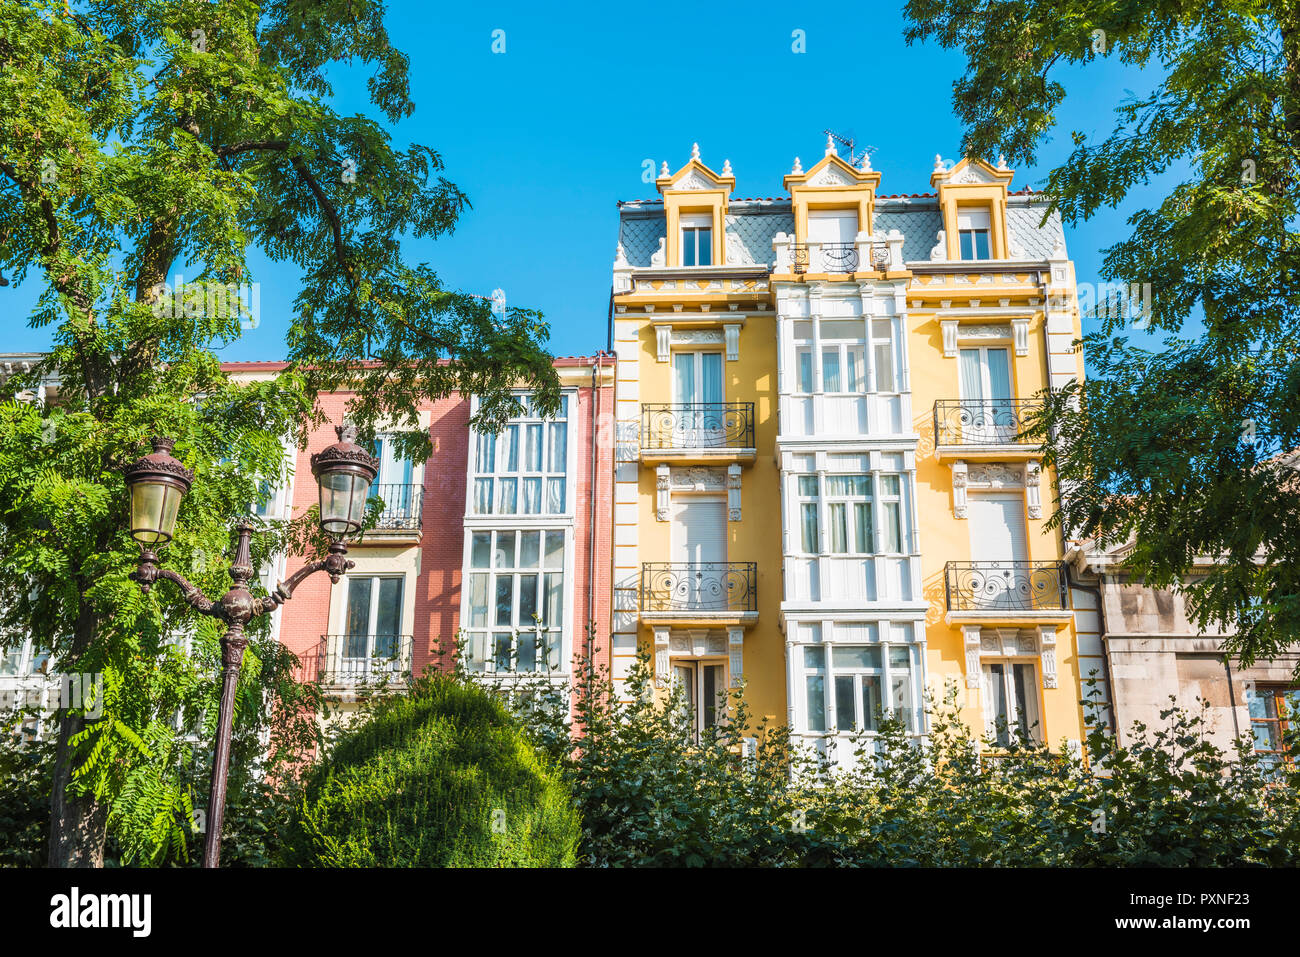 Spain, Castile and Leon, Burgos. Old town house. - Stock Image